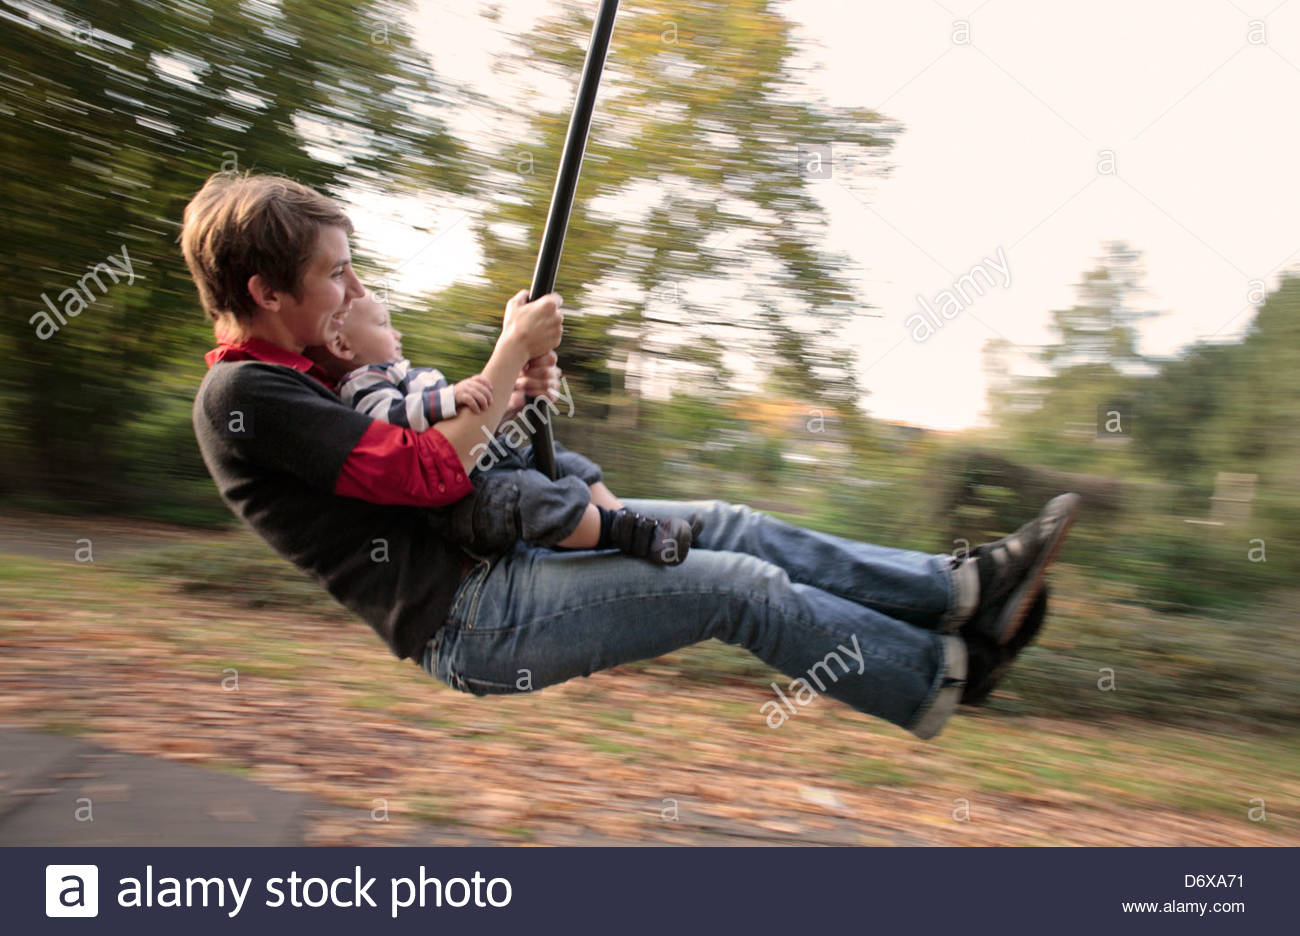 Mother and son on a swing, Sankt Augustin, Germany Stock Photo